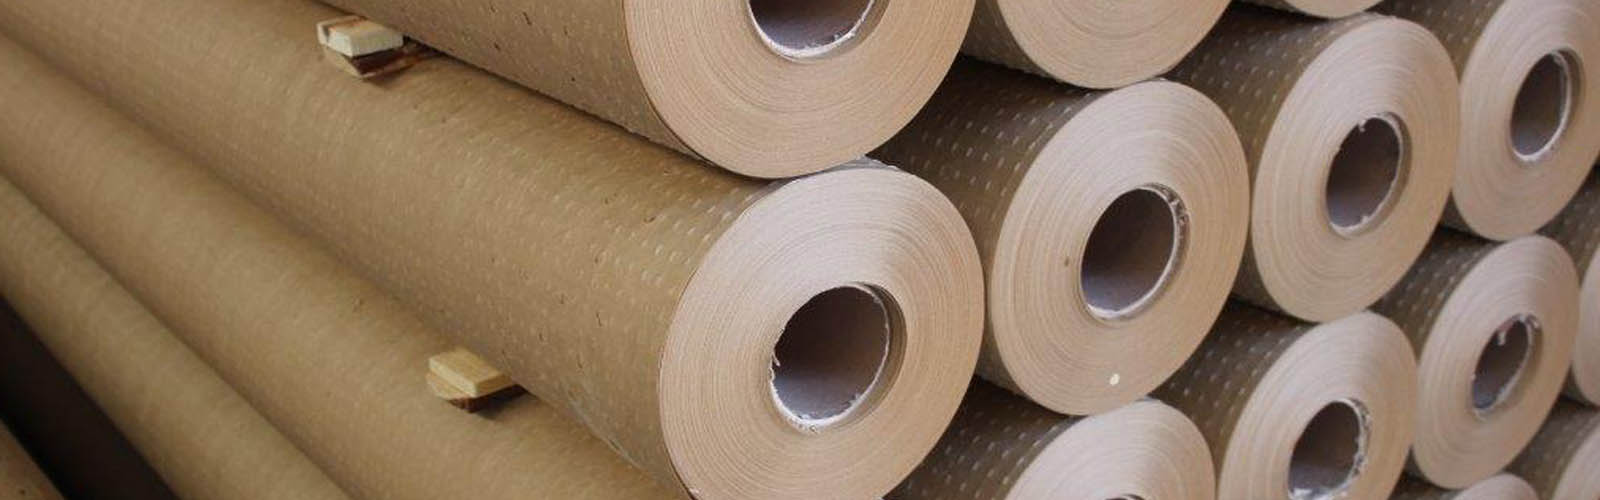 Rolls of cutting paper for fabric cutting machines